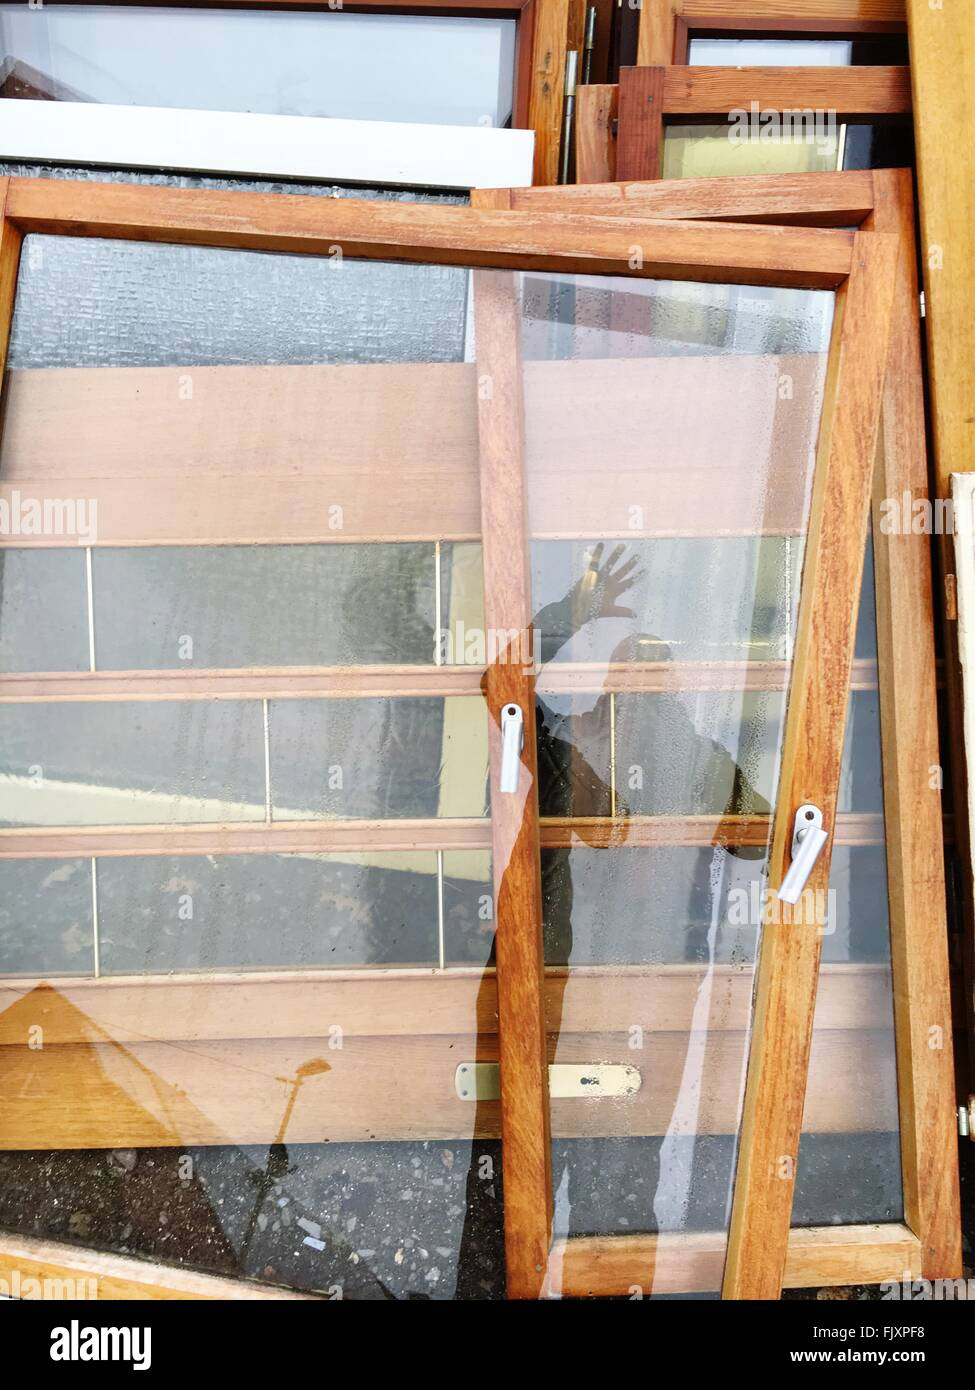 Reflection Of Man On Glass Door At Workshop - Stock Image